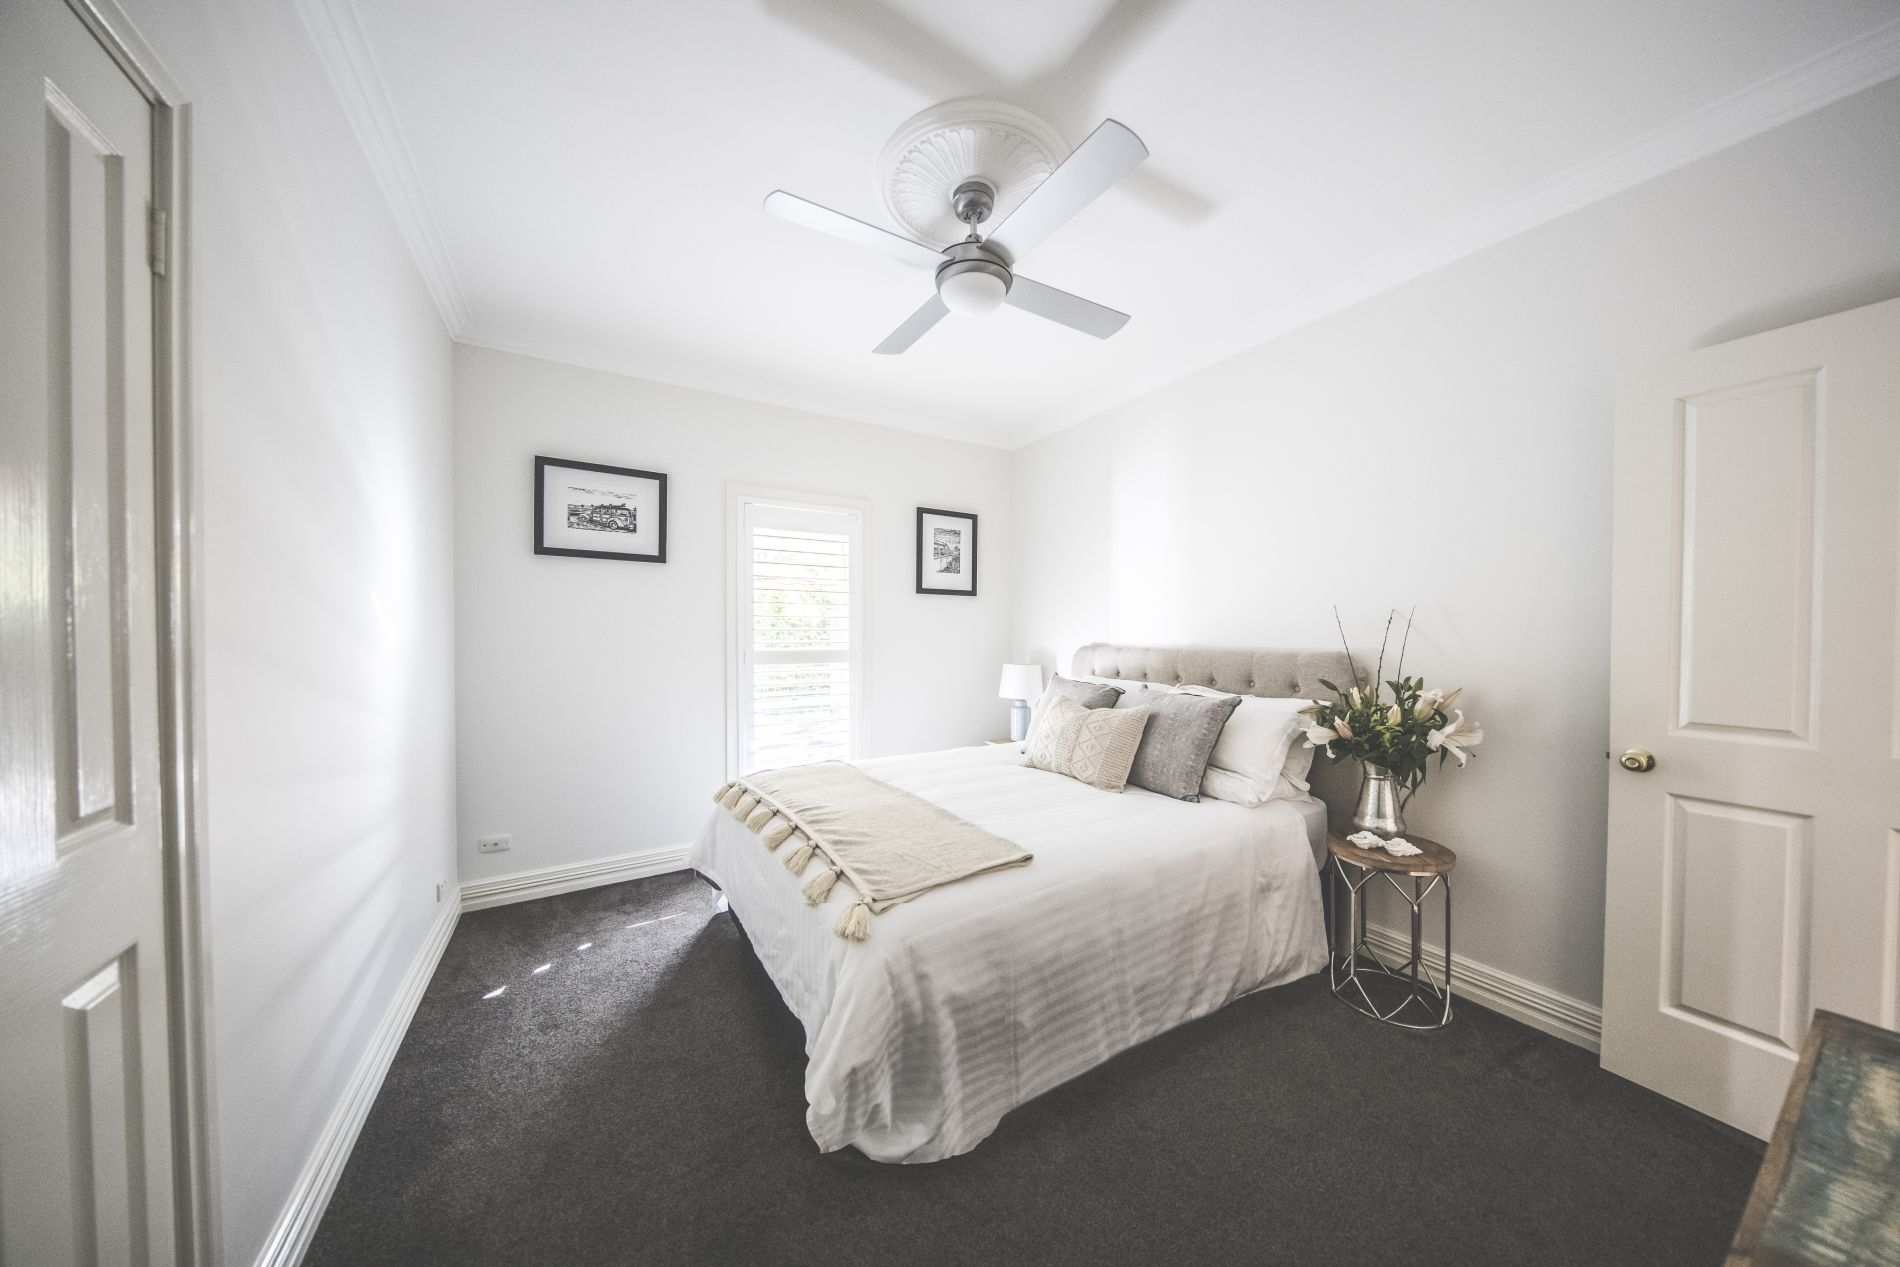 Soft linens and cushions in second bedroom with carpet and ceiling fan and fresh flowers bedside